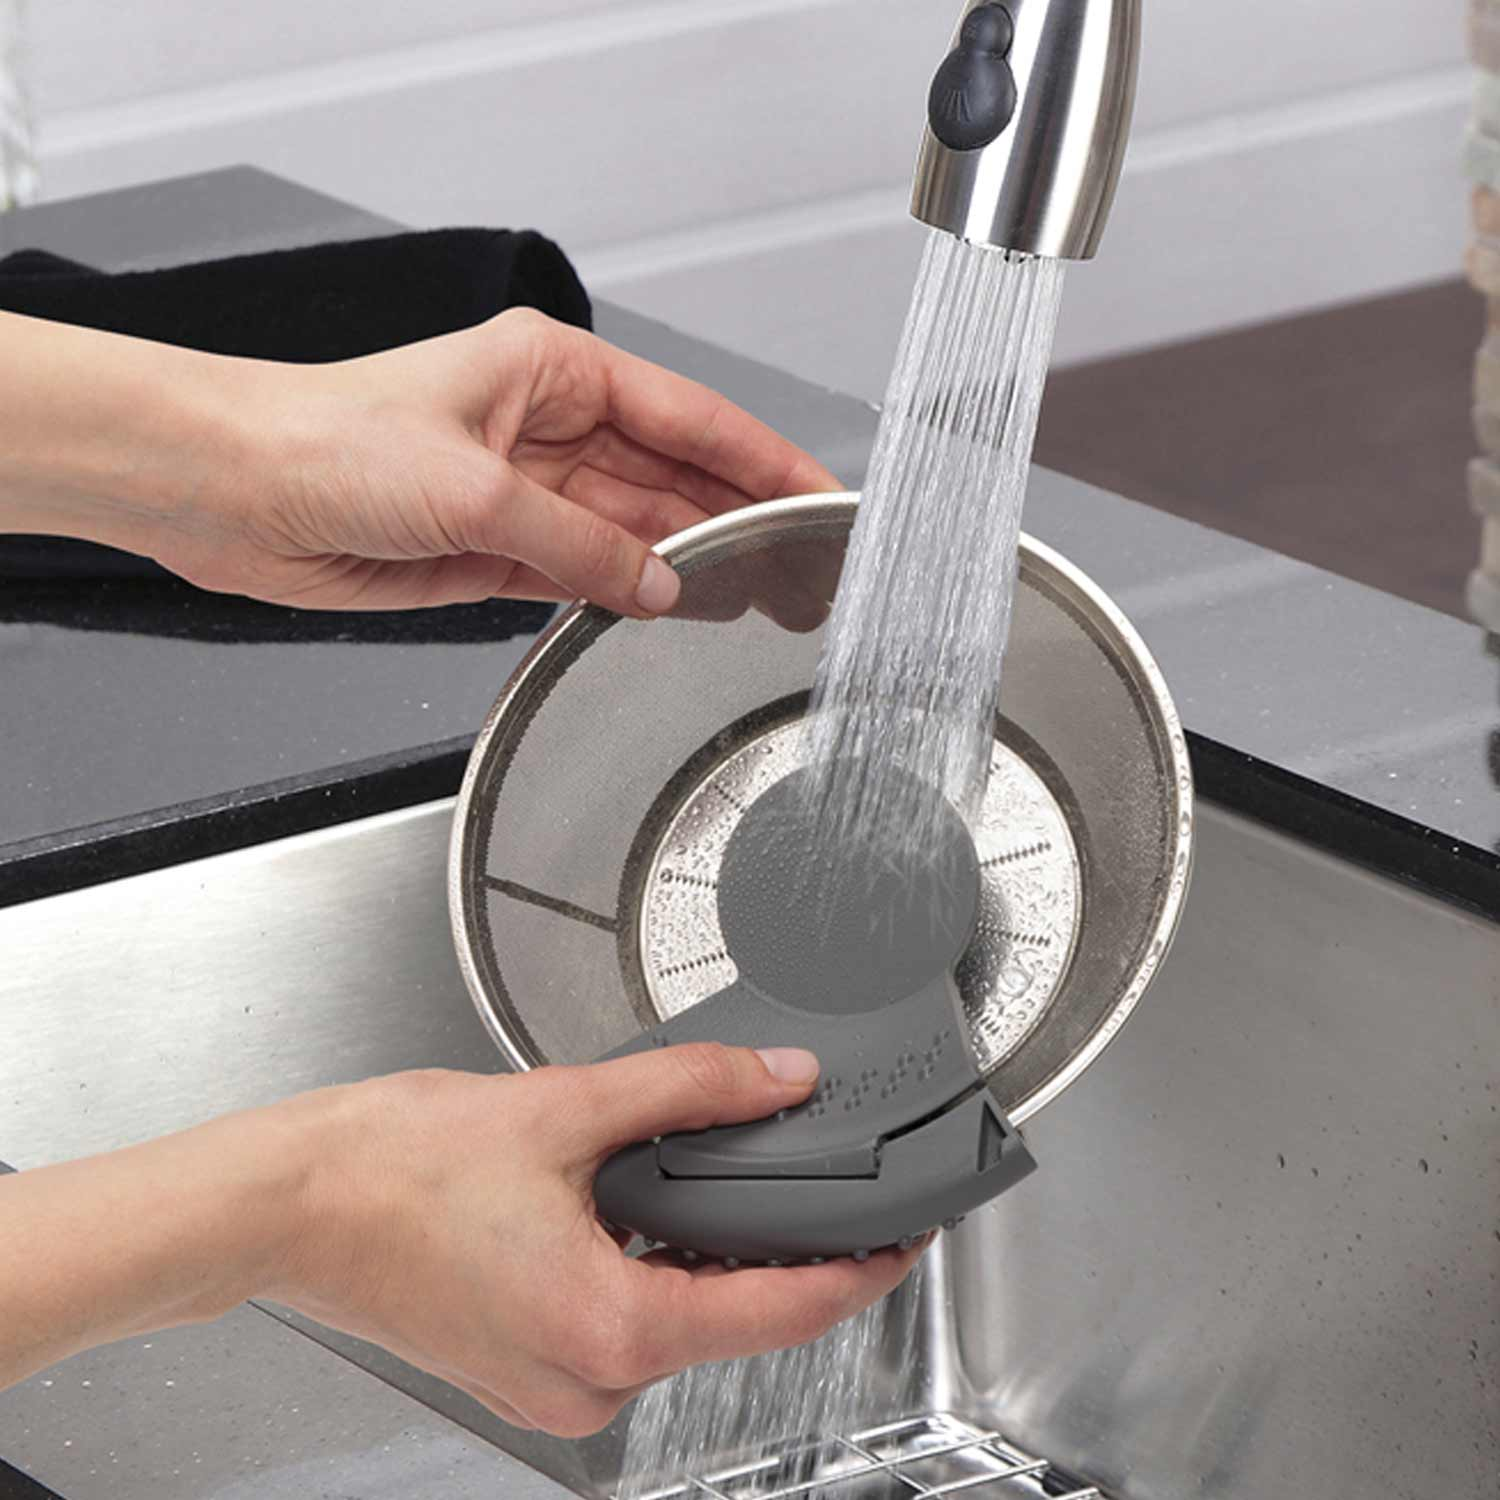 67850 Big Mouth Premium Juice Extractor cuts cleaning time in half with the Easy Sweep cleaning tool.